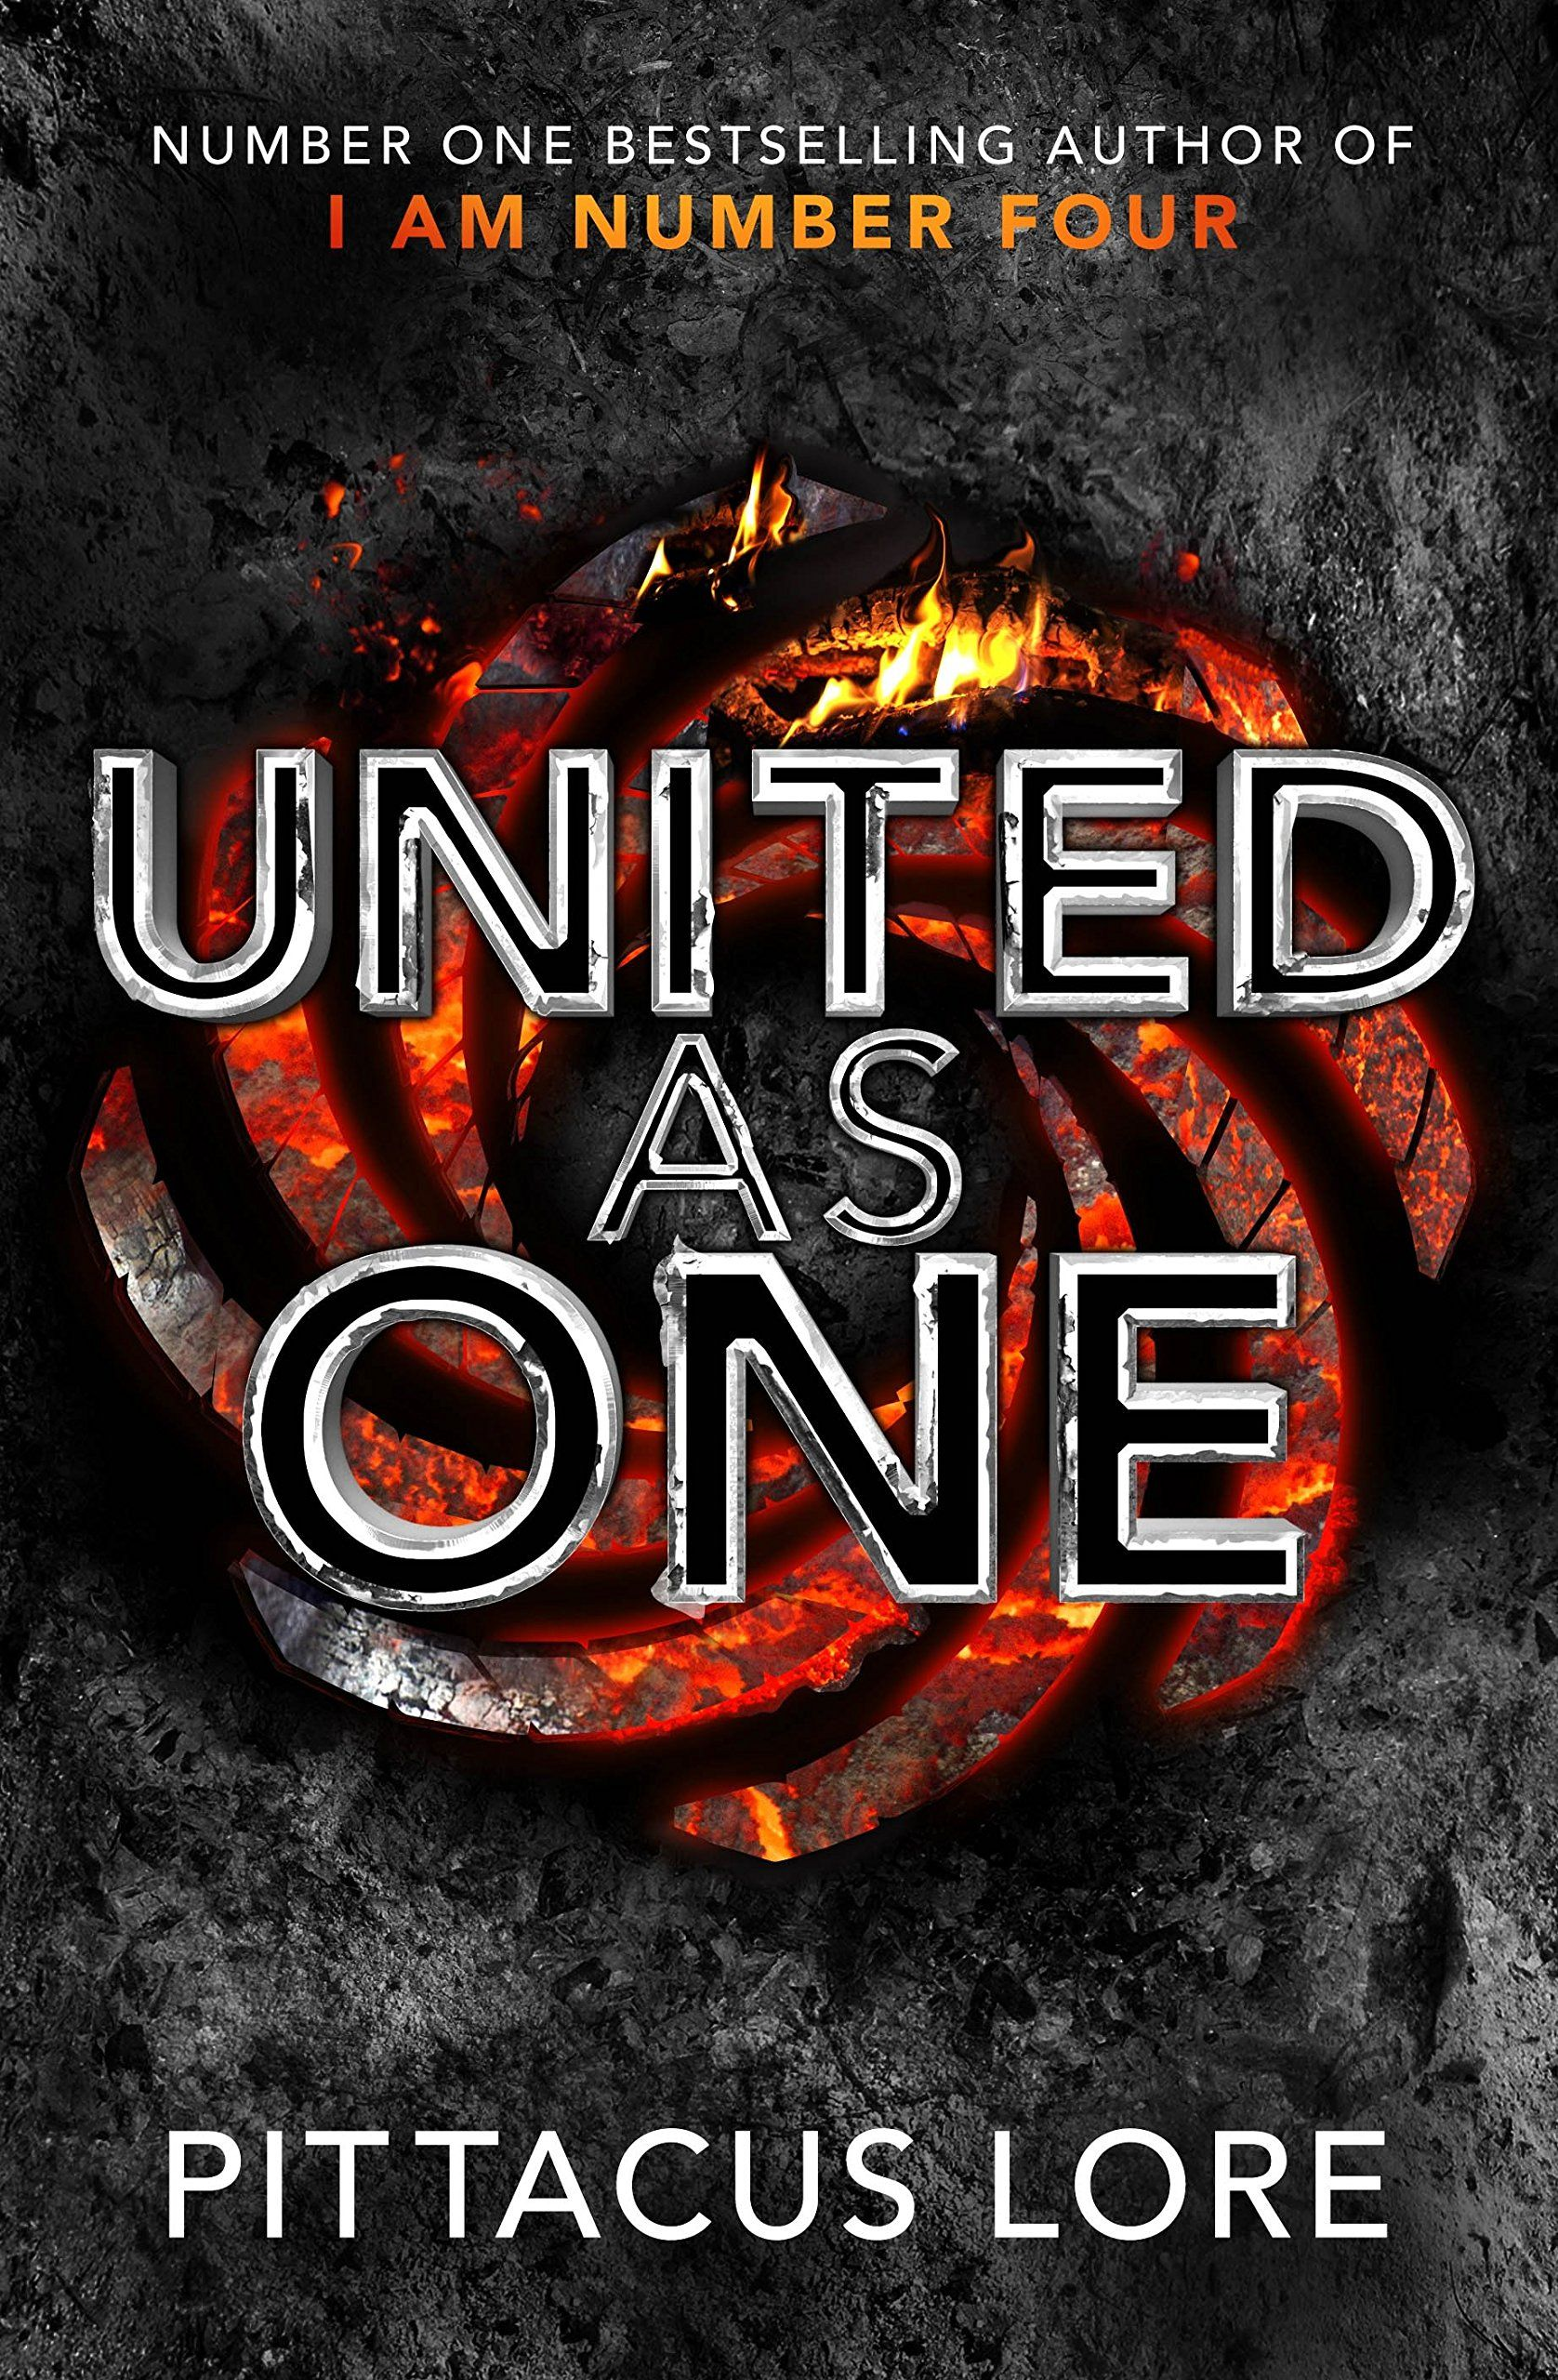 United As One (lorien Legacies #7), Pittacus Lore Released July 14th